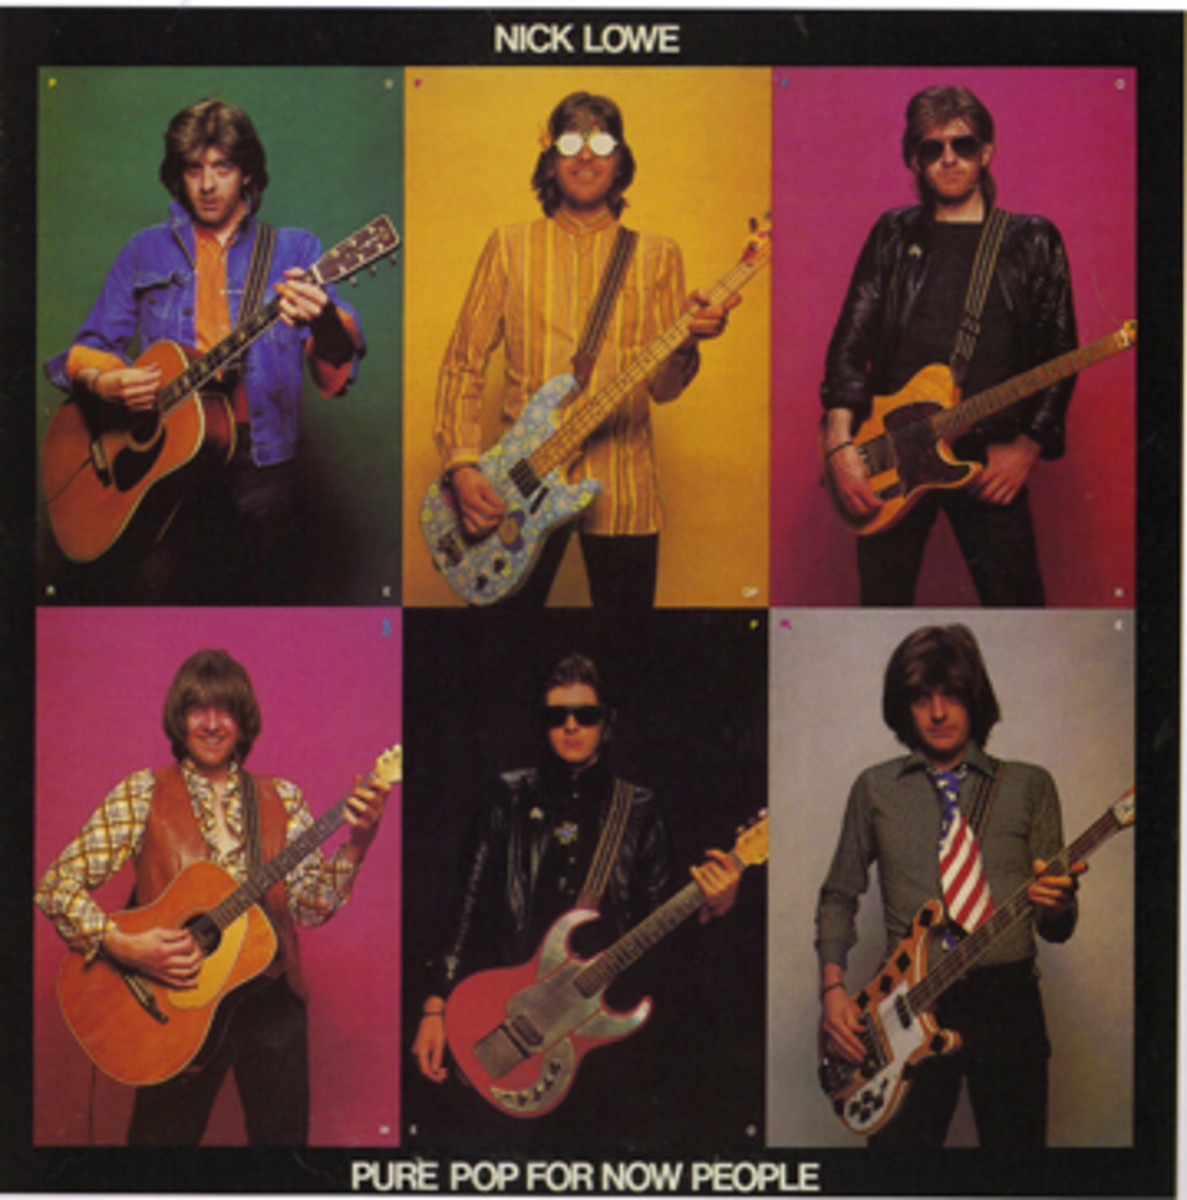 Nick Lowe Pure Pop For Now People U.S. issue